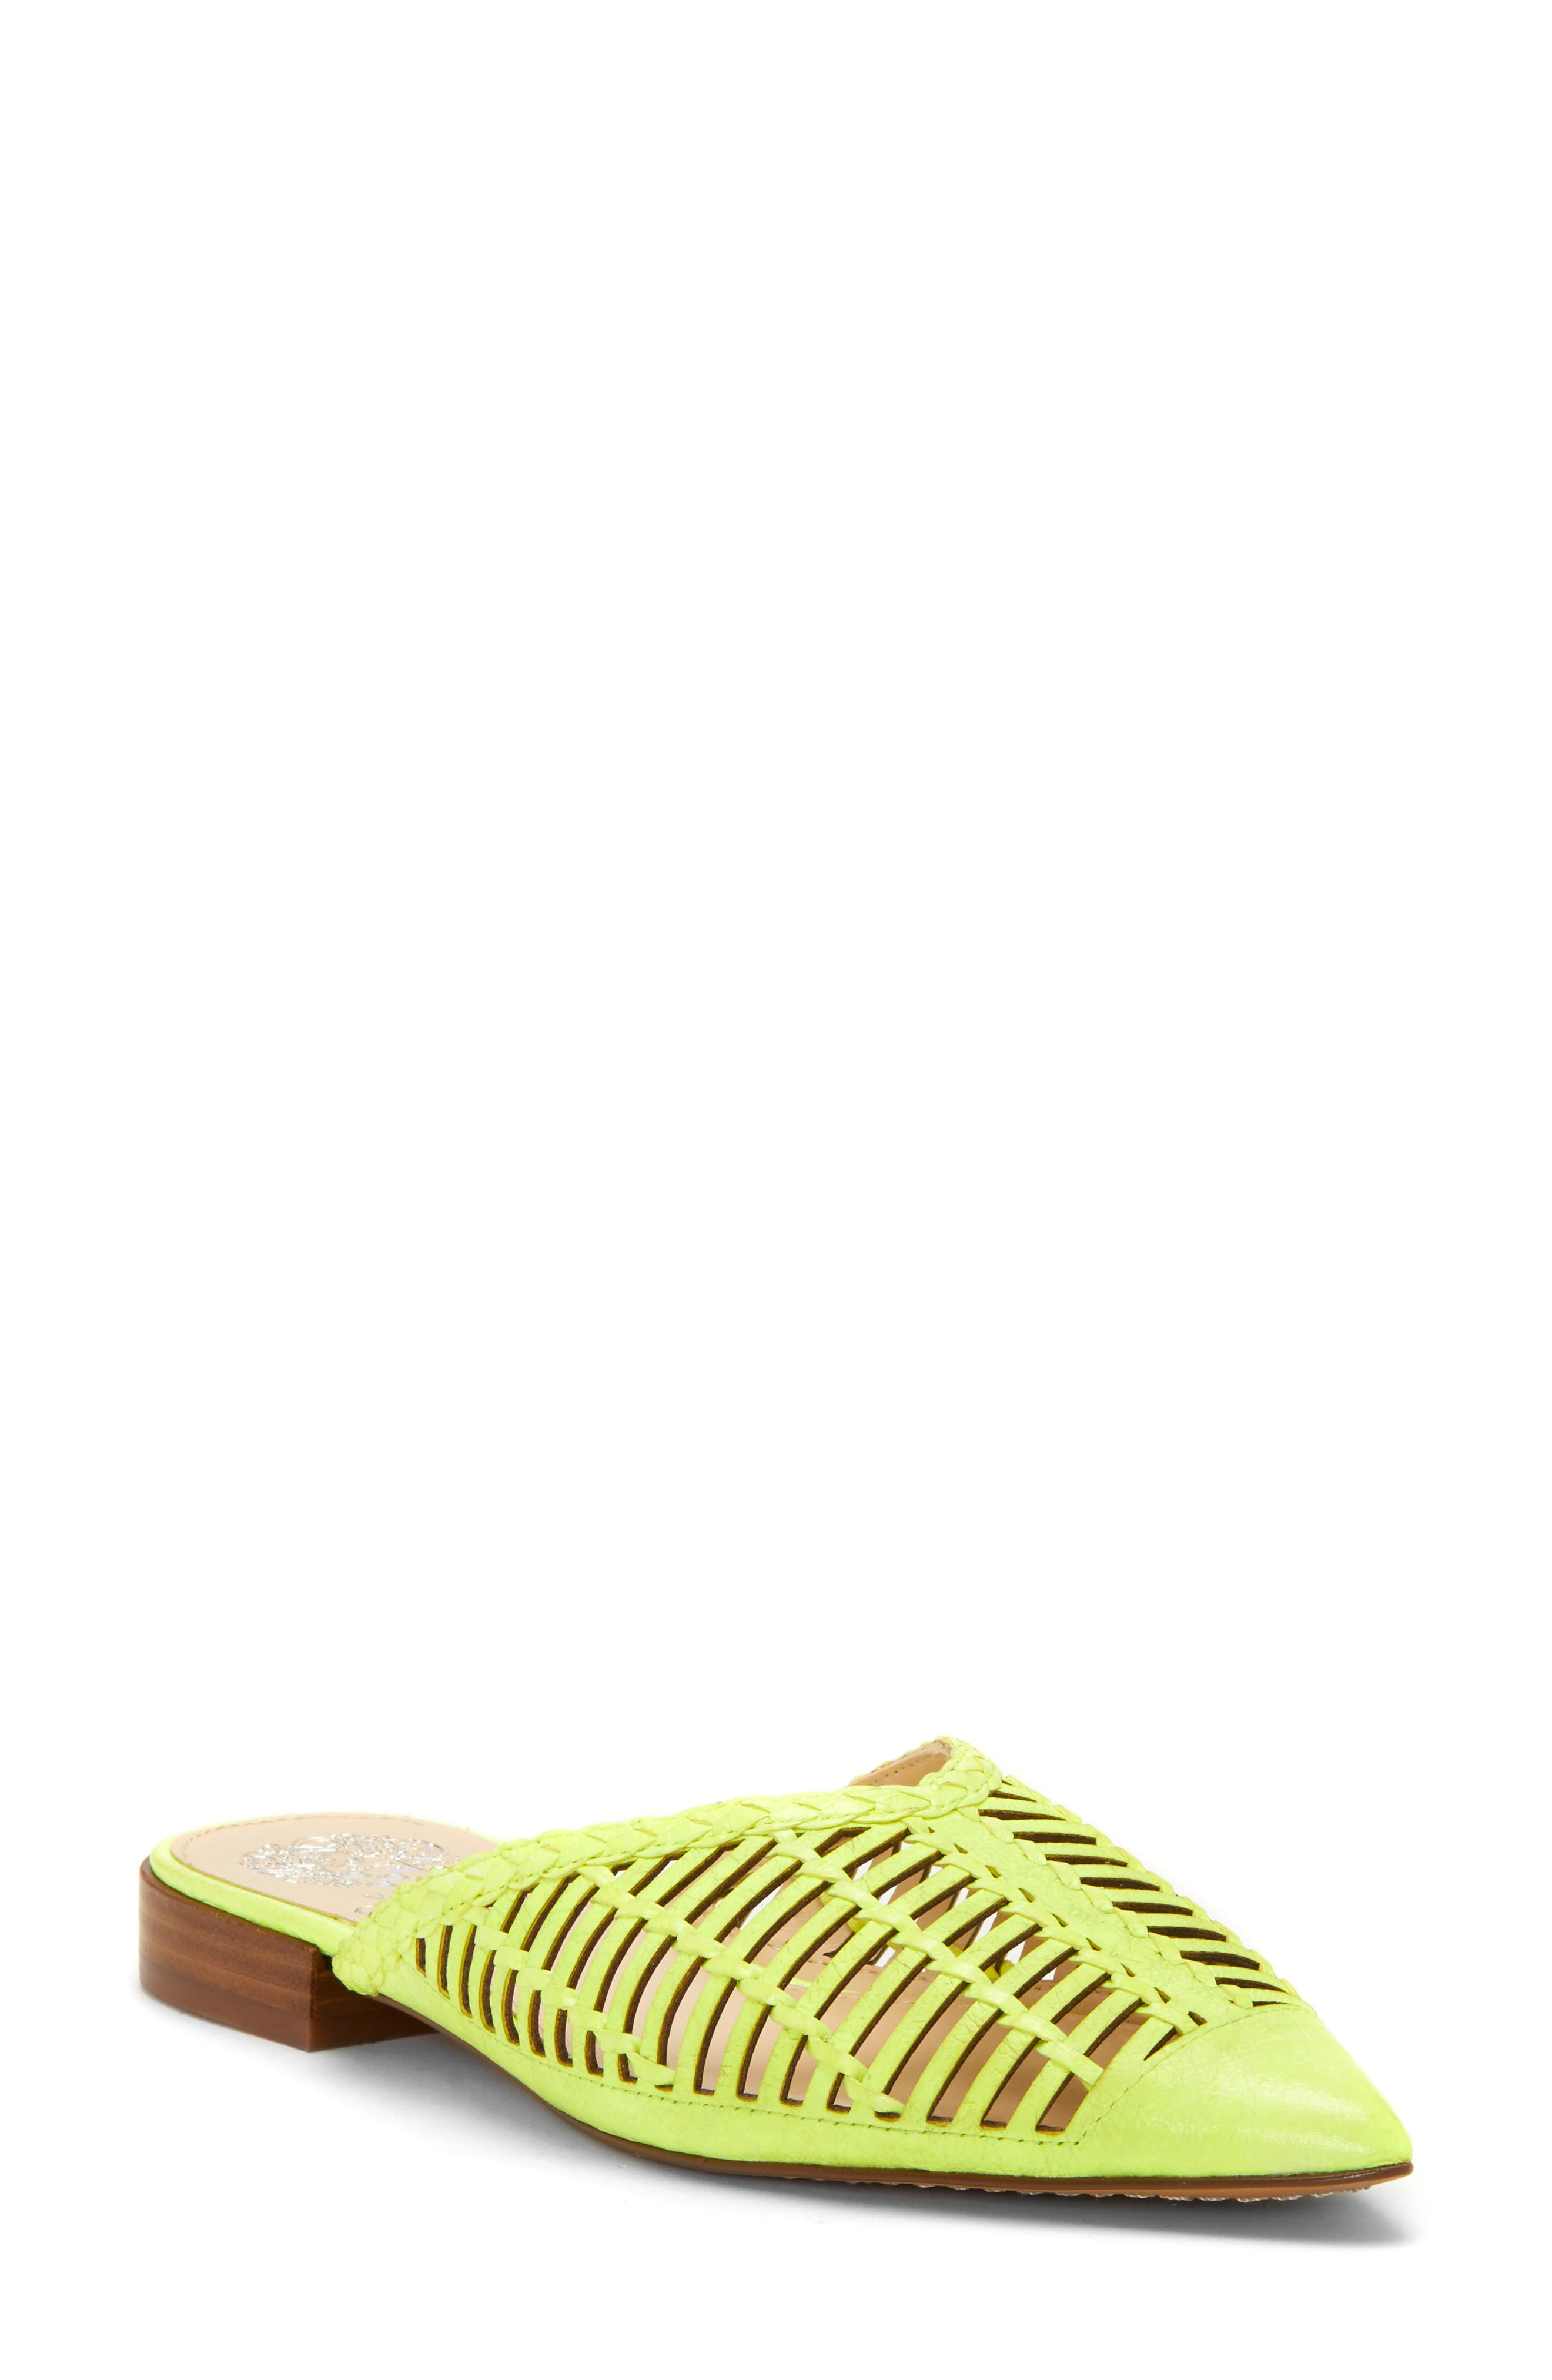 Vince Camuto Morley Woven Pointy Toe Mule (Women)